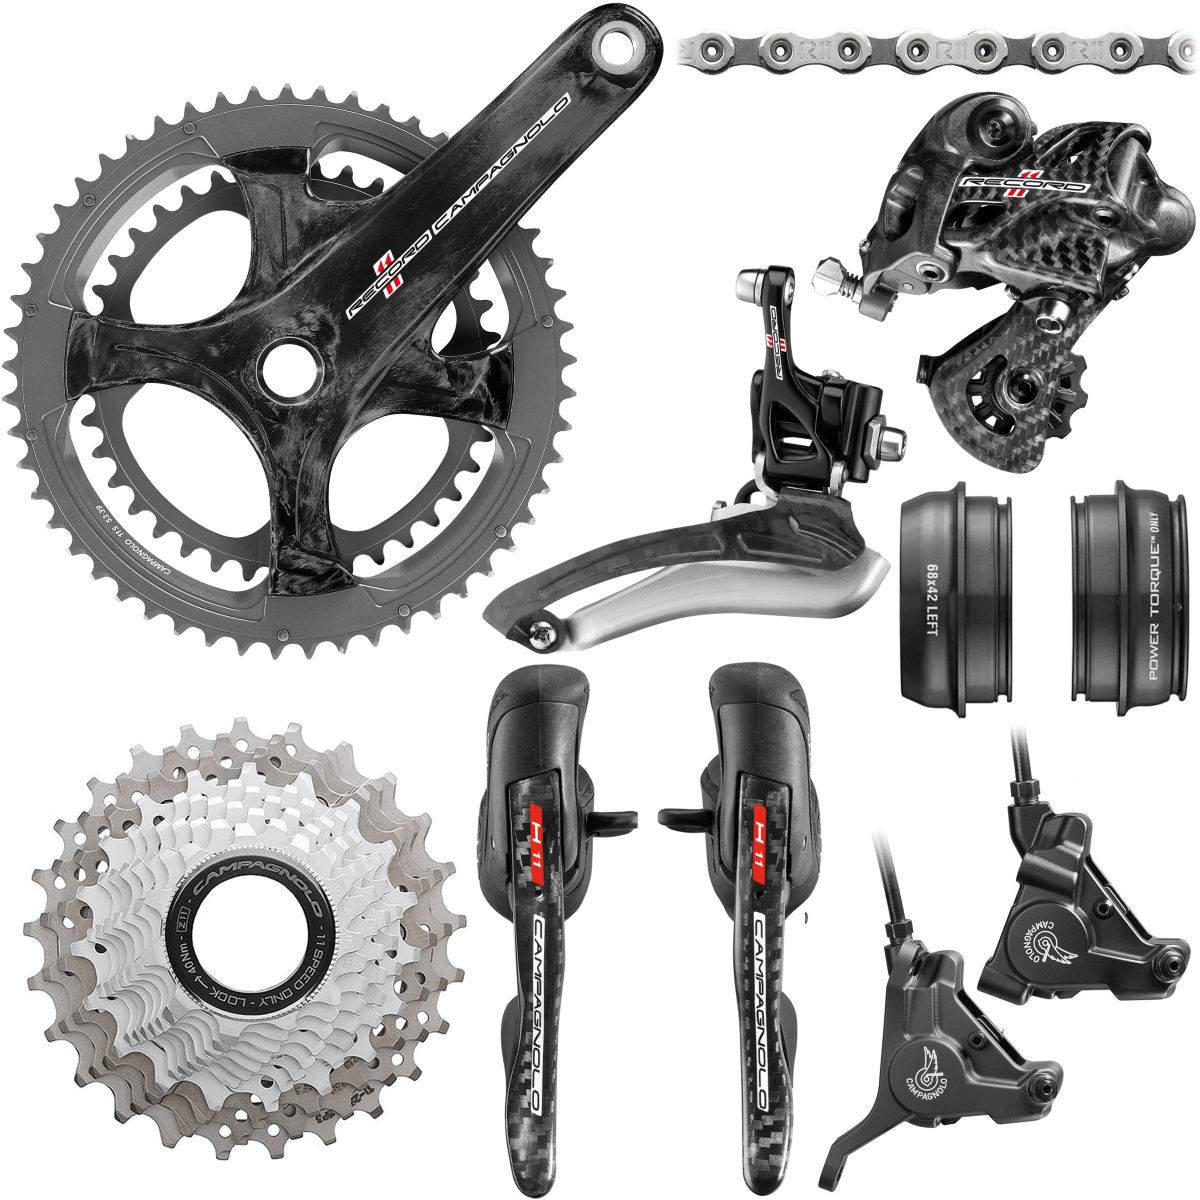 Campagnolo Campagnolo Super Record 11 Speed Hydraulic Disc Groupset   Groupsets